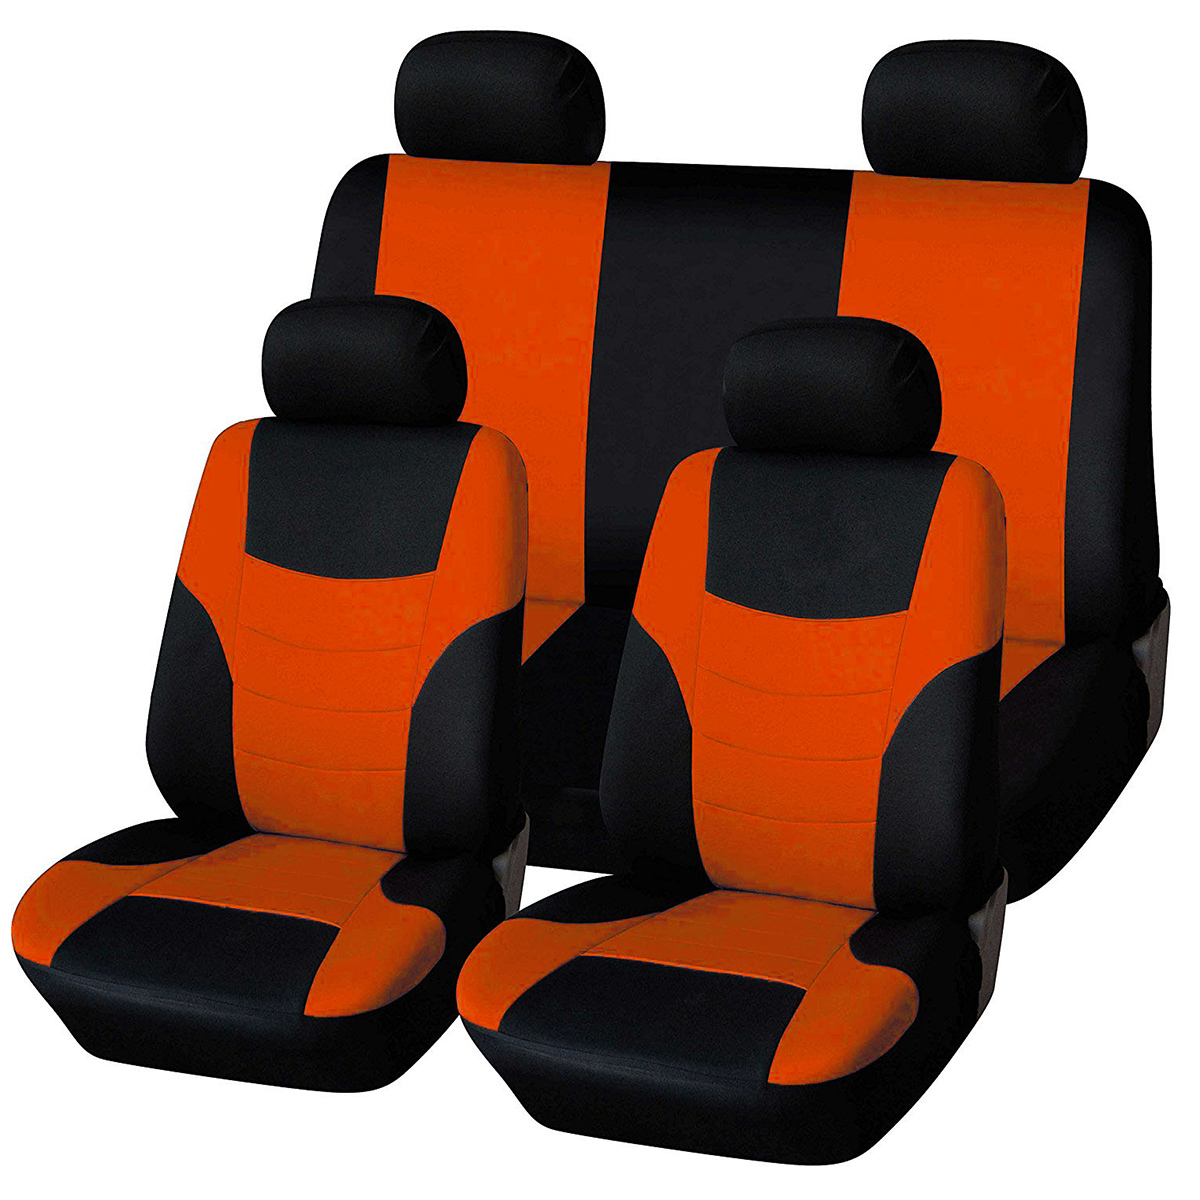 Pleasant 8Pcs 2019 New Auto Car Seat Covers Universal Automotive Car Seat Cover Fit Most Vehicles Seats Orange Creativecarmelina Interior Chair Design Creativecarmelinacom